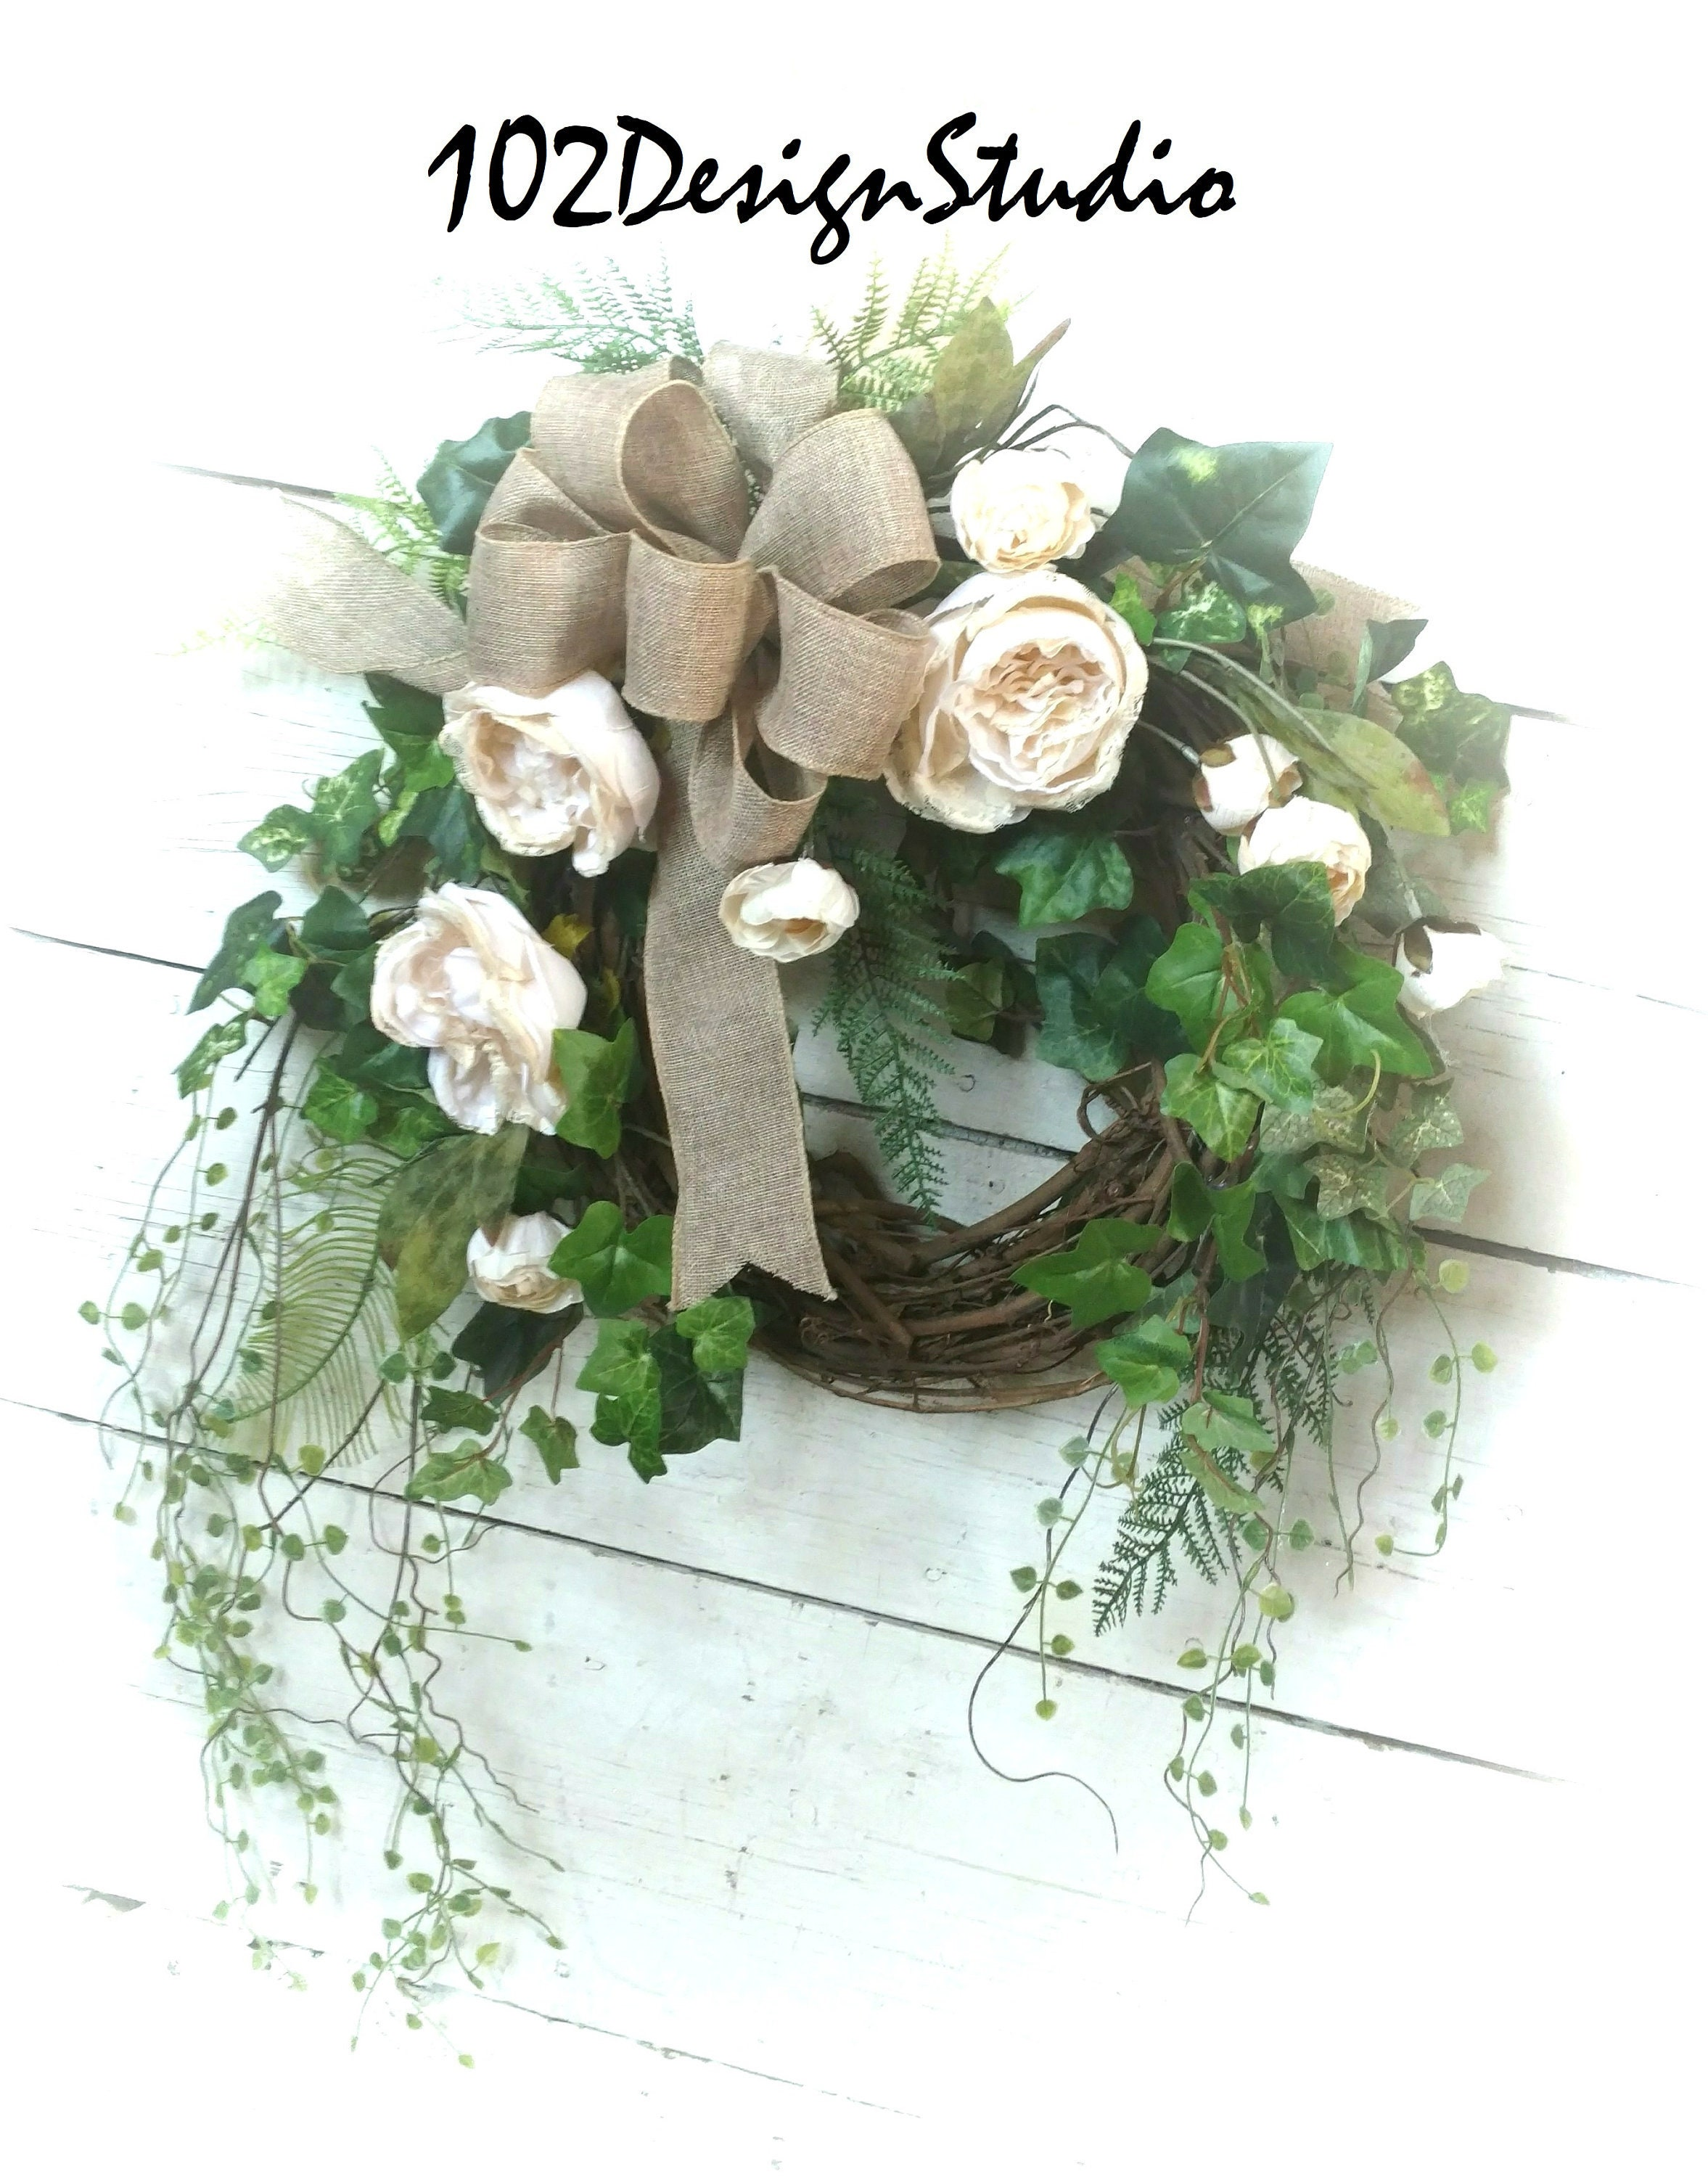 Farmhouse Wreath,Farmhouseswag,Etsy Farmhouse Wreath,Etsy Farmhouse Swag,Front Door Farmhouse,All Season Farmhouse,